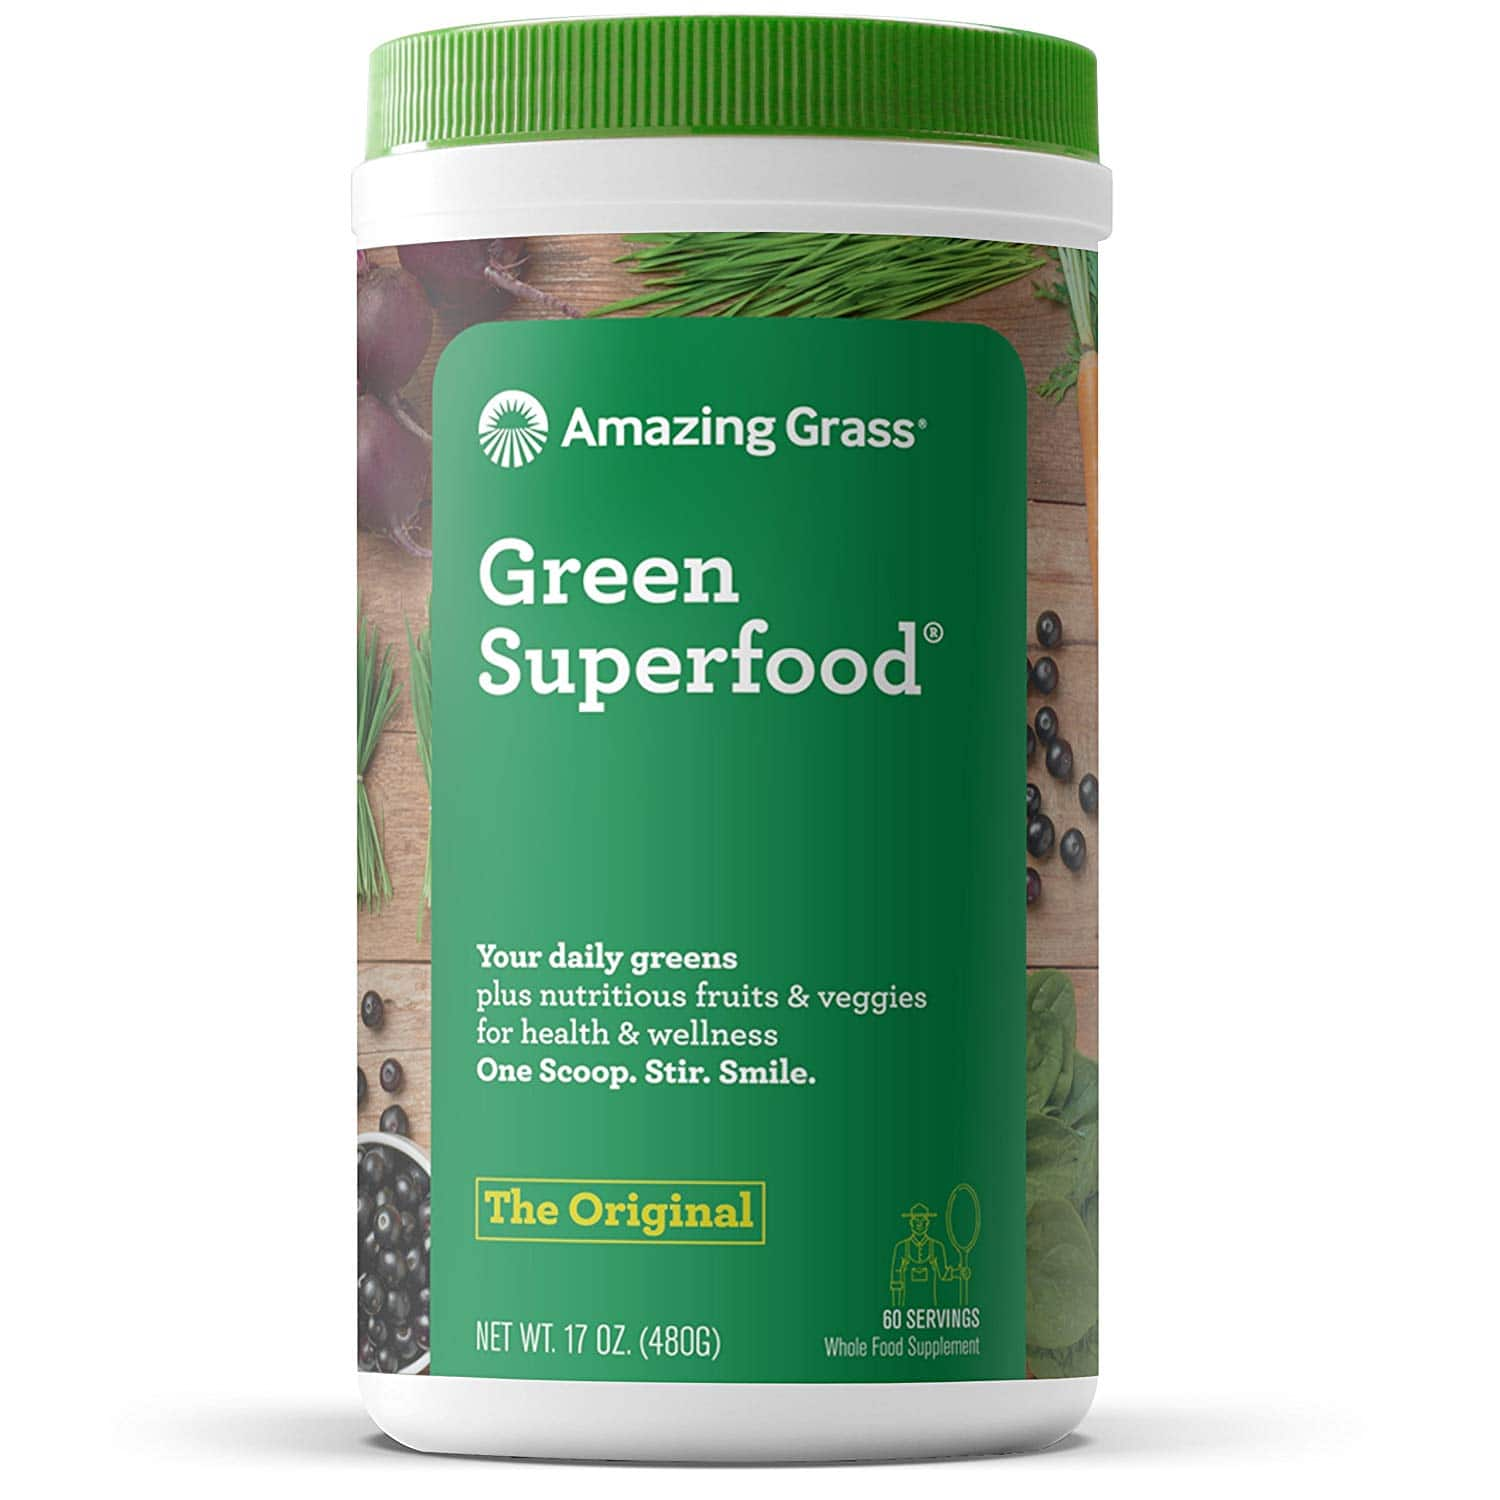 17oz Amazing Grass: Organic Wheat Grass $20.56, Green Superfood (Original) $20.76 w/ S&S + Free Shipping